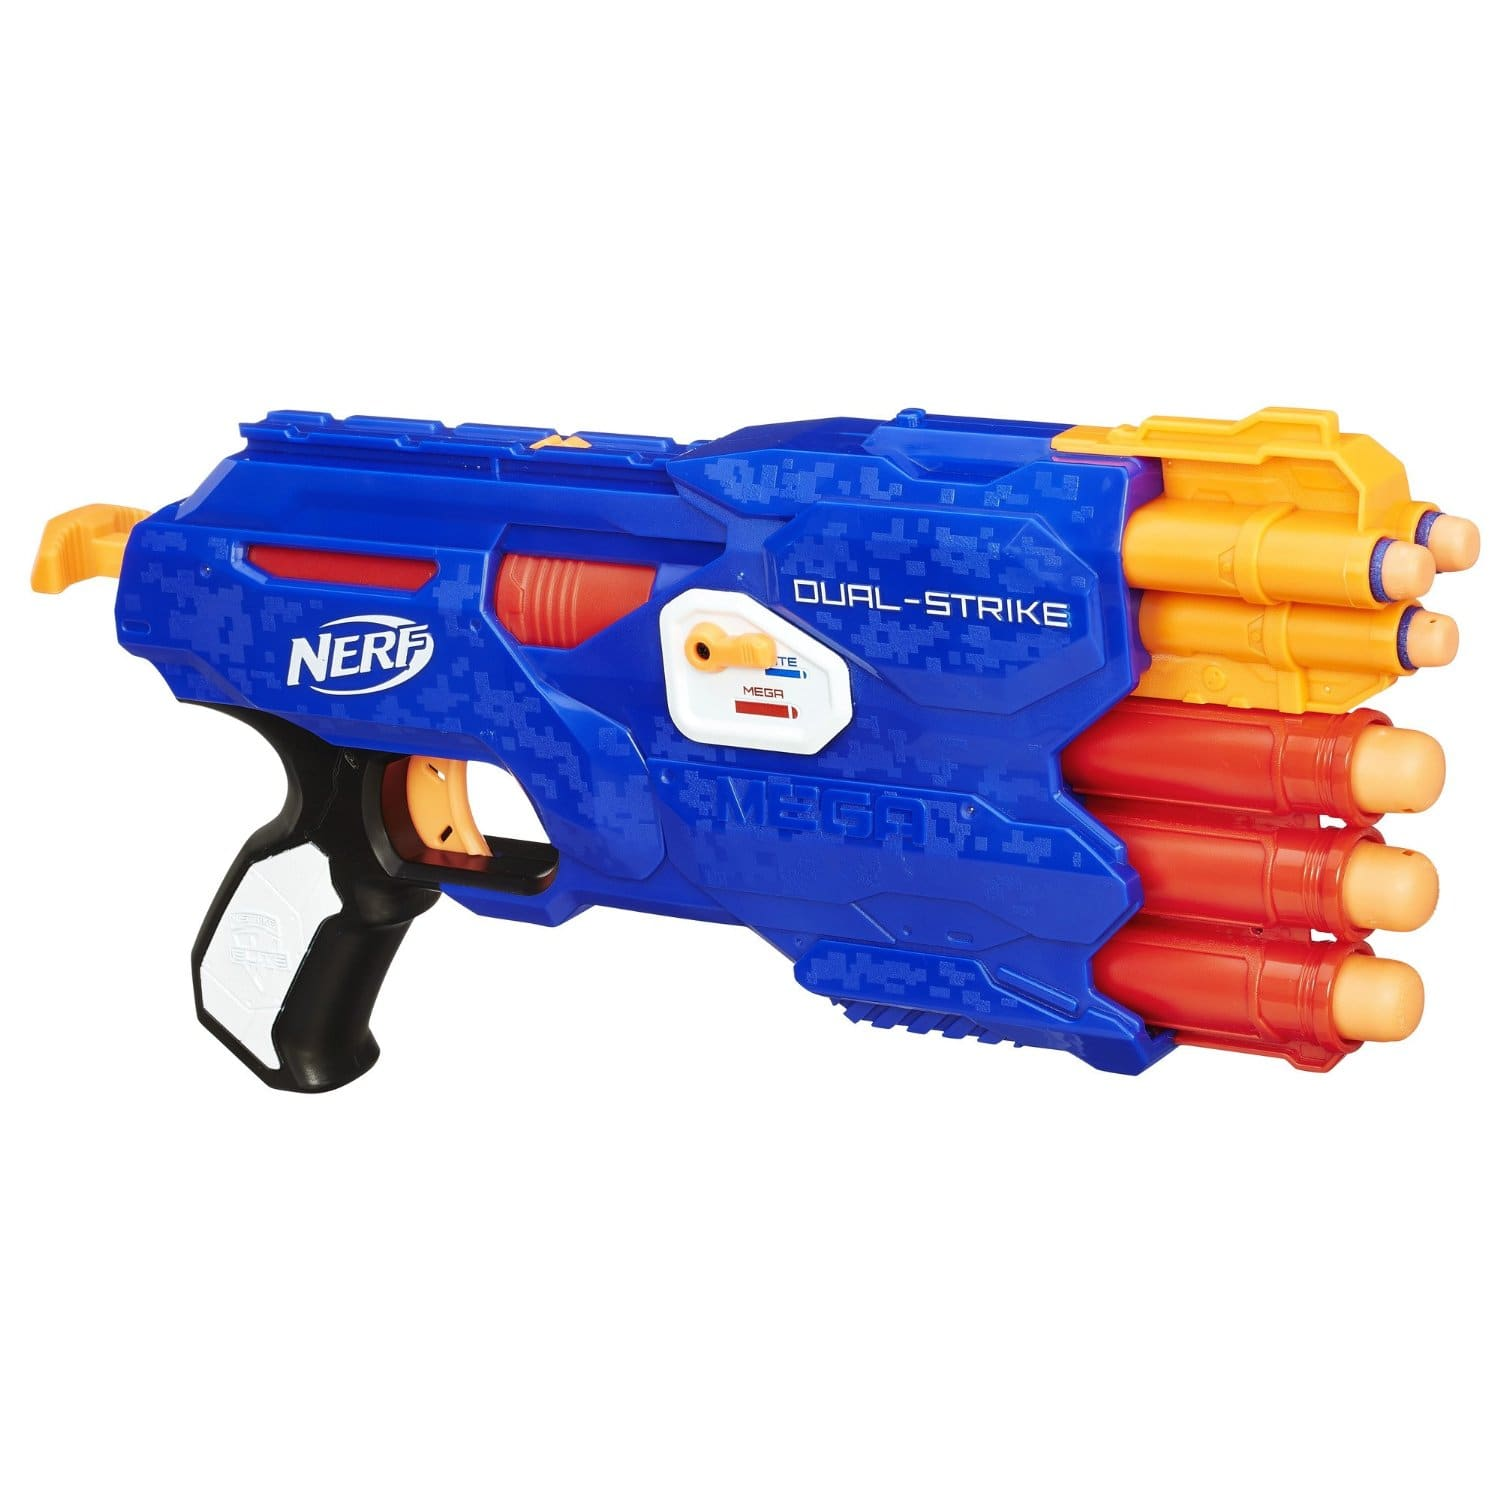 Select DOTD Nerf Toys: Up to 50% Off: Nerf Elite DualStrike Blaster, 2-Pack Jolt Blaster Set $9.99 & More via Amazon